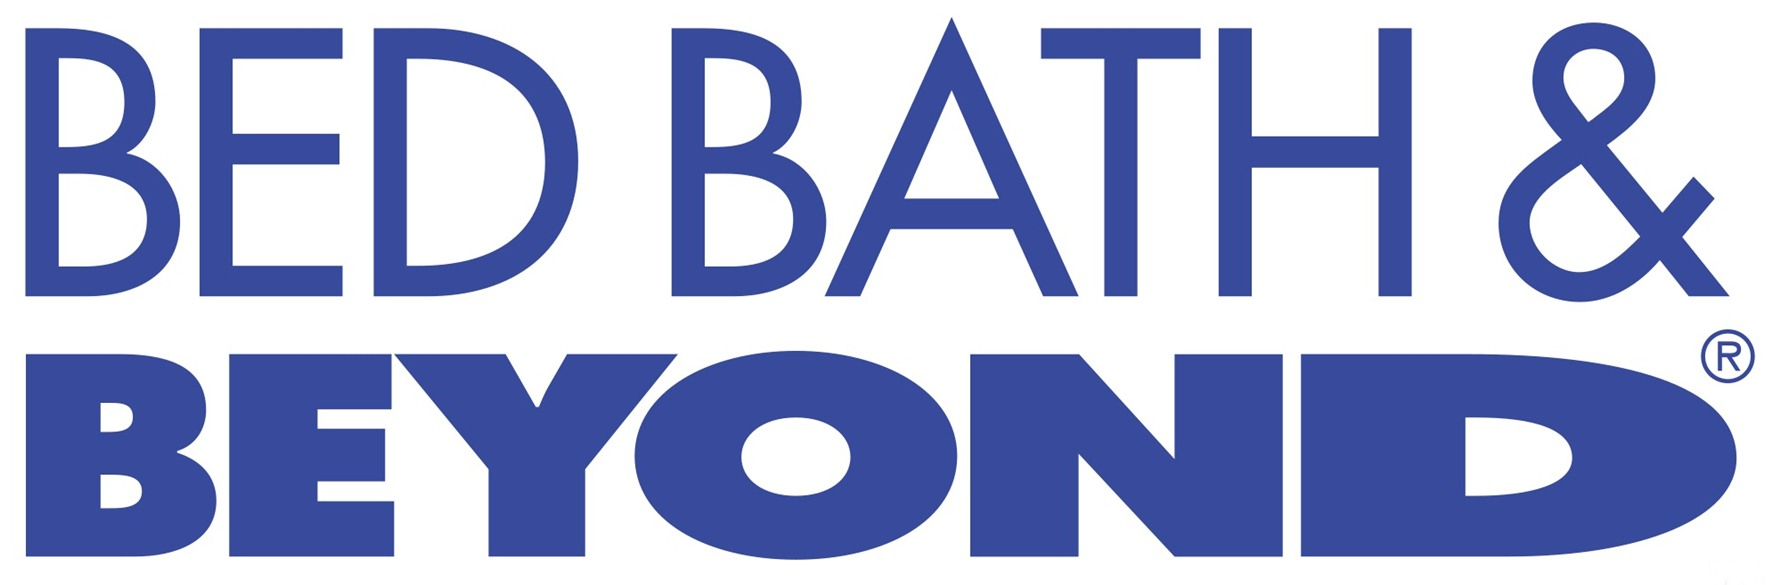 Bed bath and beyond Logos.